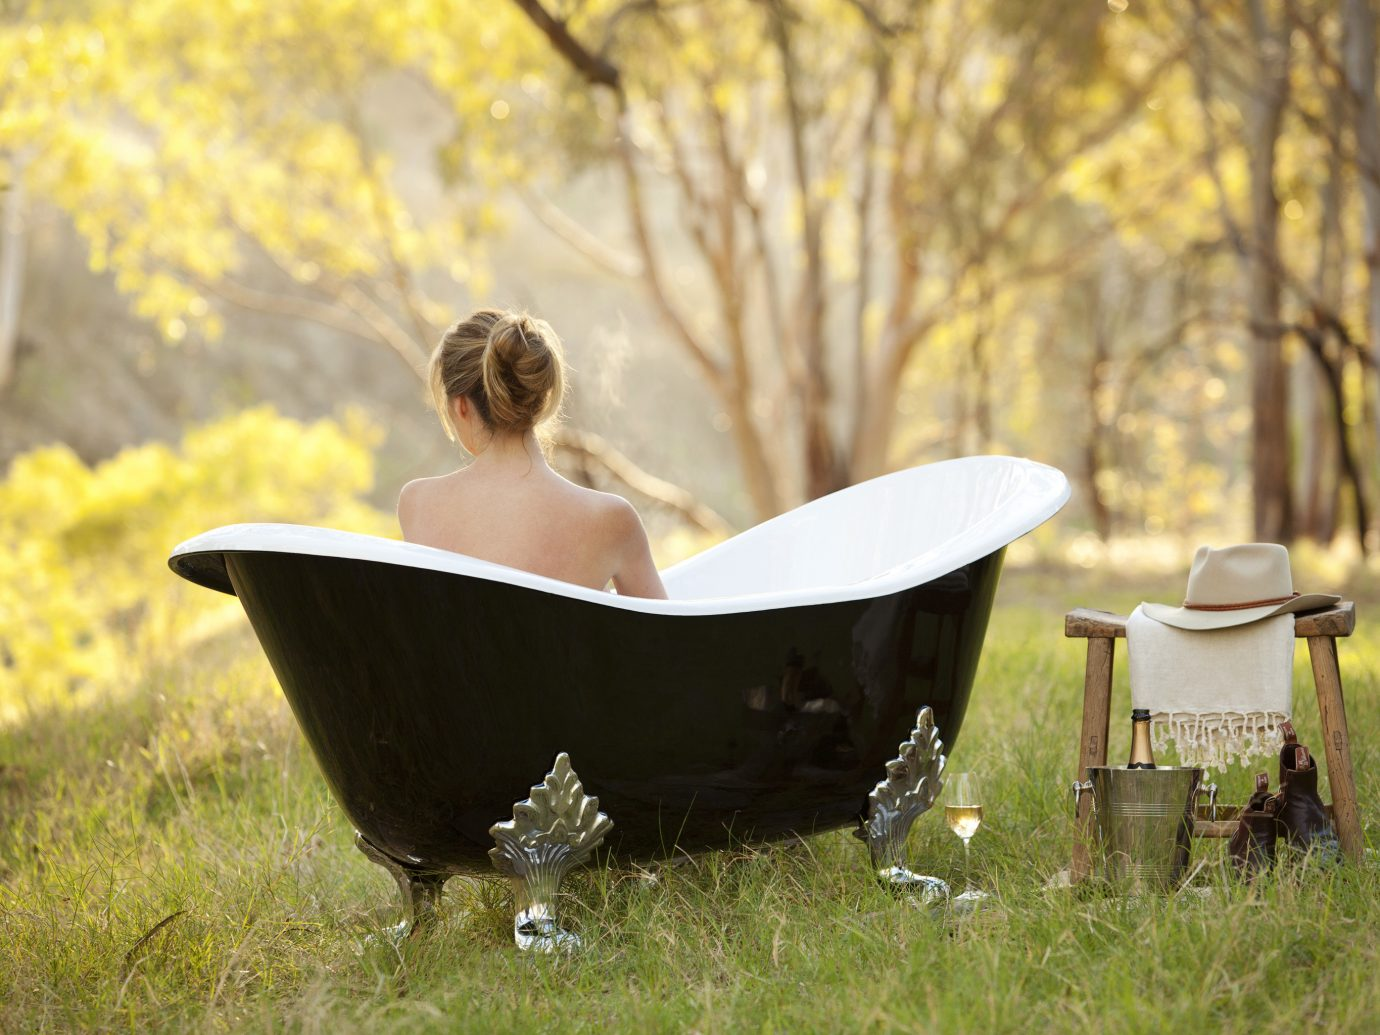 Health + Wellness Hotels Spa Retreats grass tree outdoor season lawn morning spring backyard Picnic flower autumn